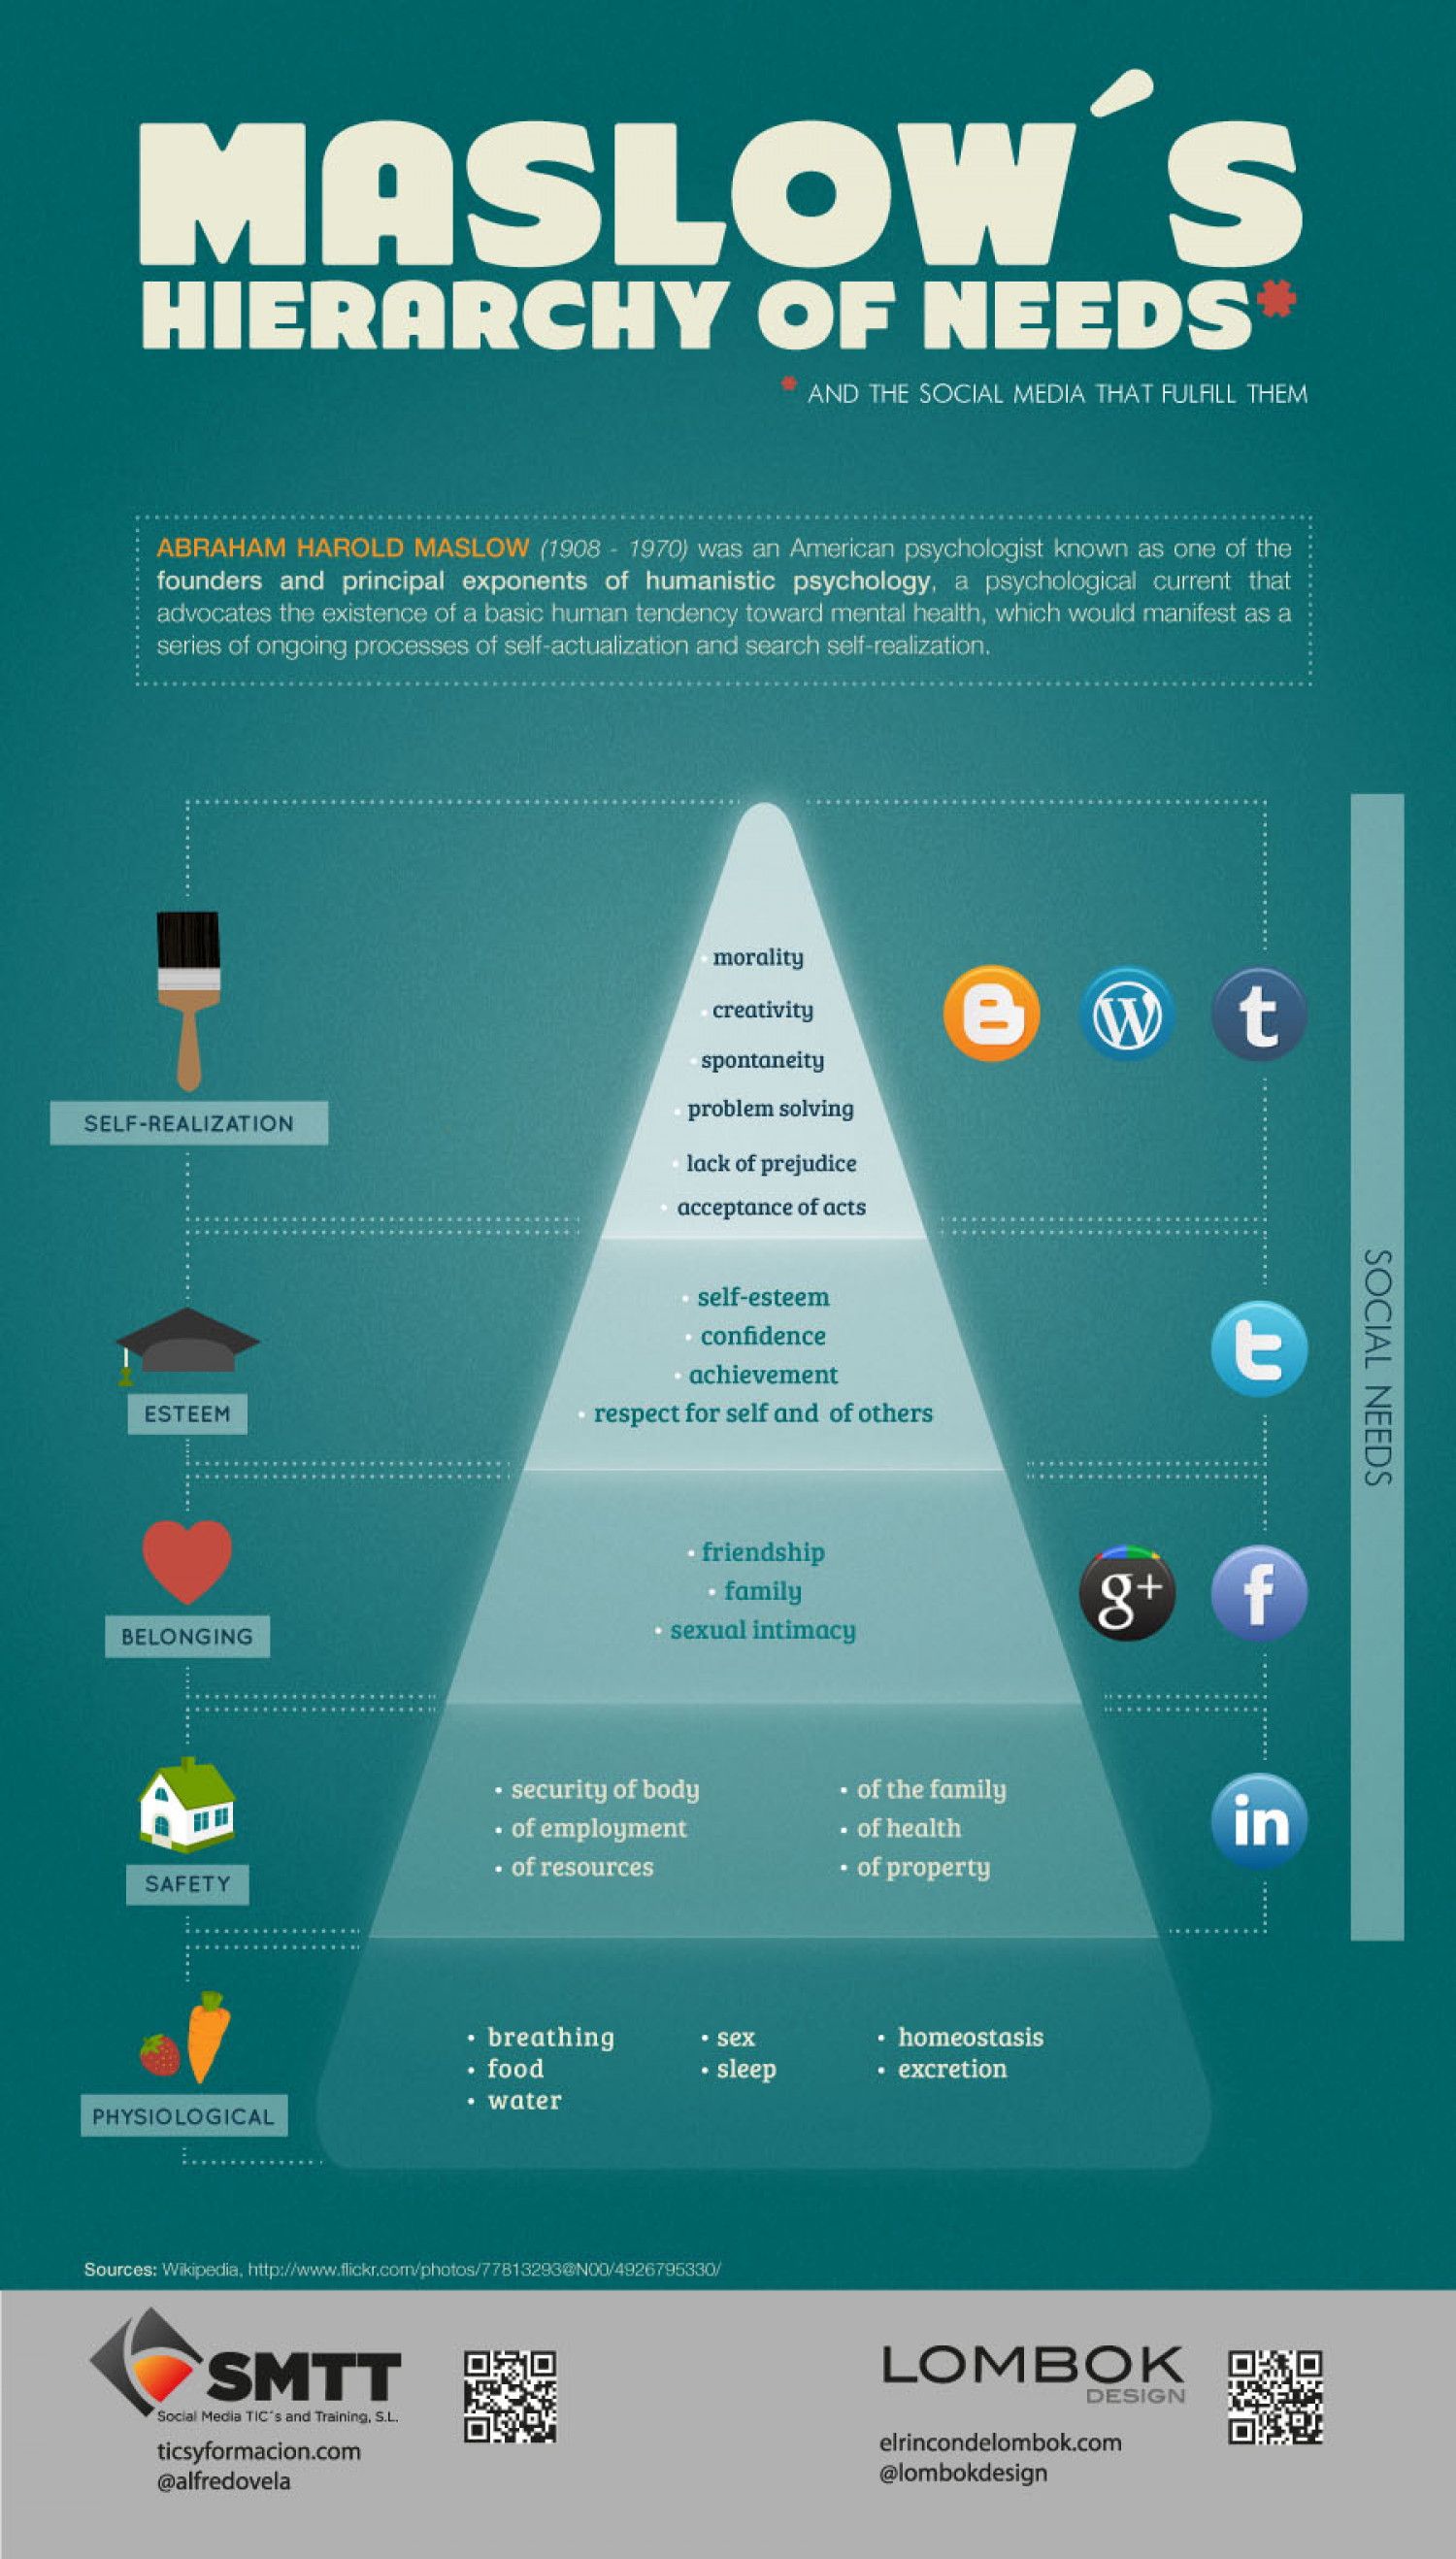 Social Media and Maslow's hierarchy of needs Infographic